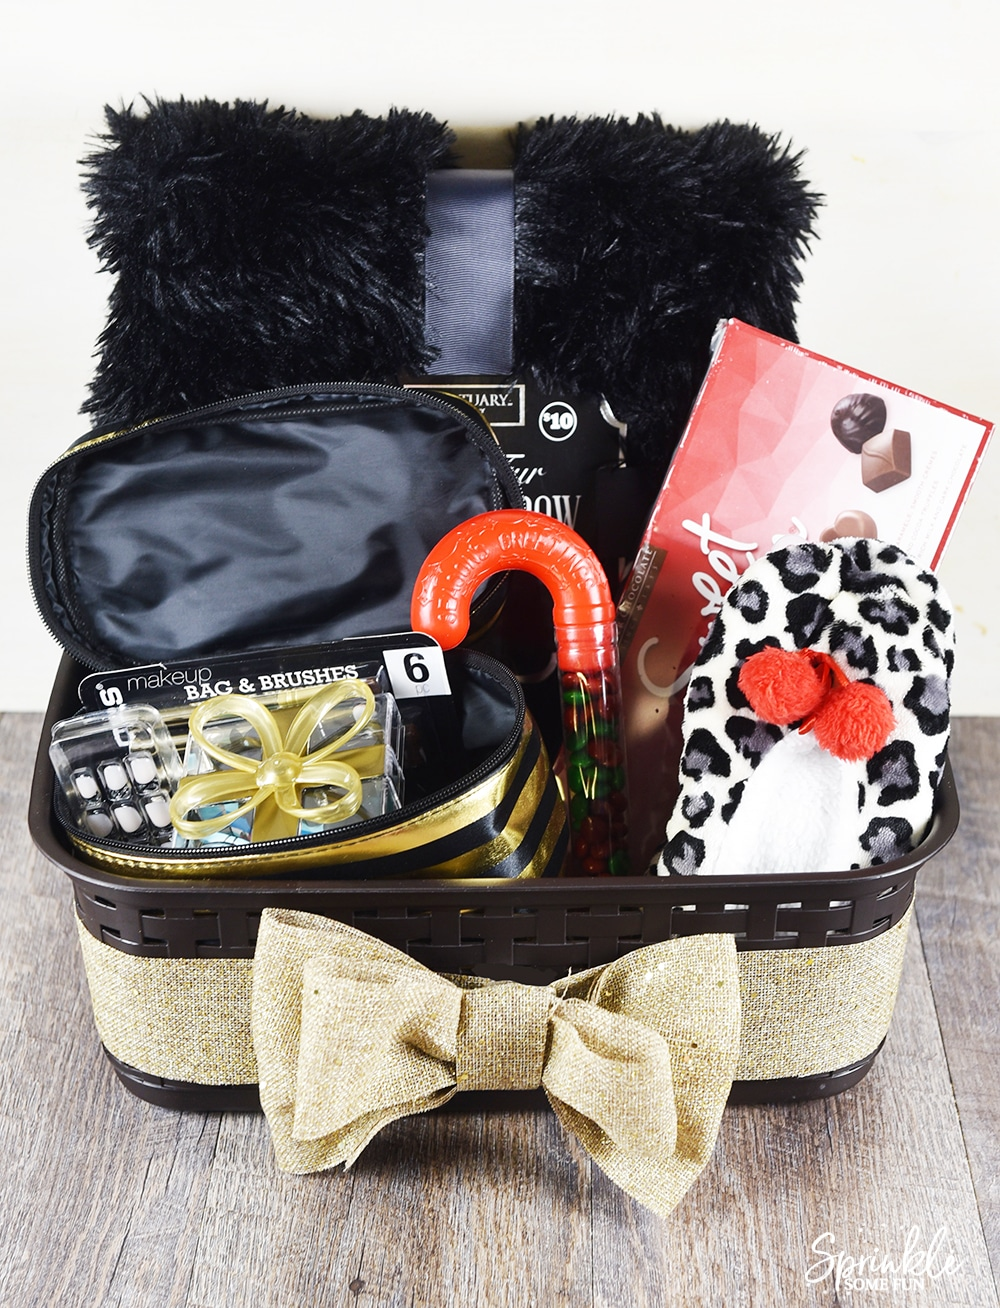 Christmas Gift Baskets Ideas.Diy Holiday Gift Basket Idea For Teen Girls Sprinkle Some Fun